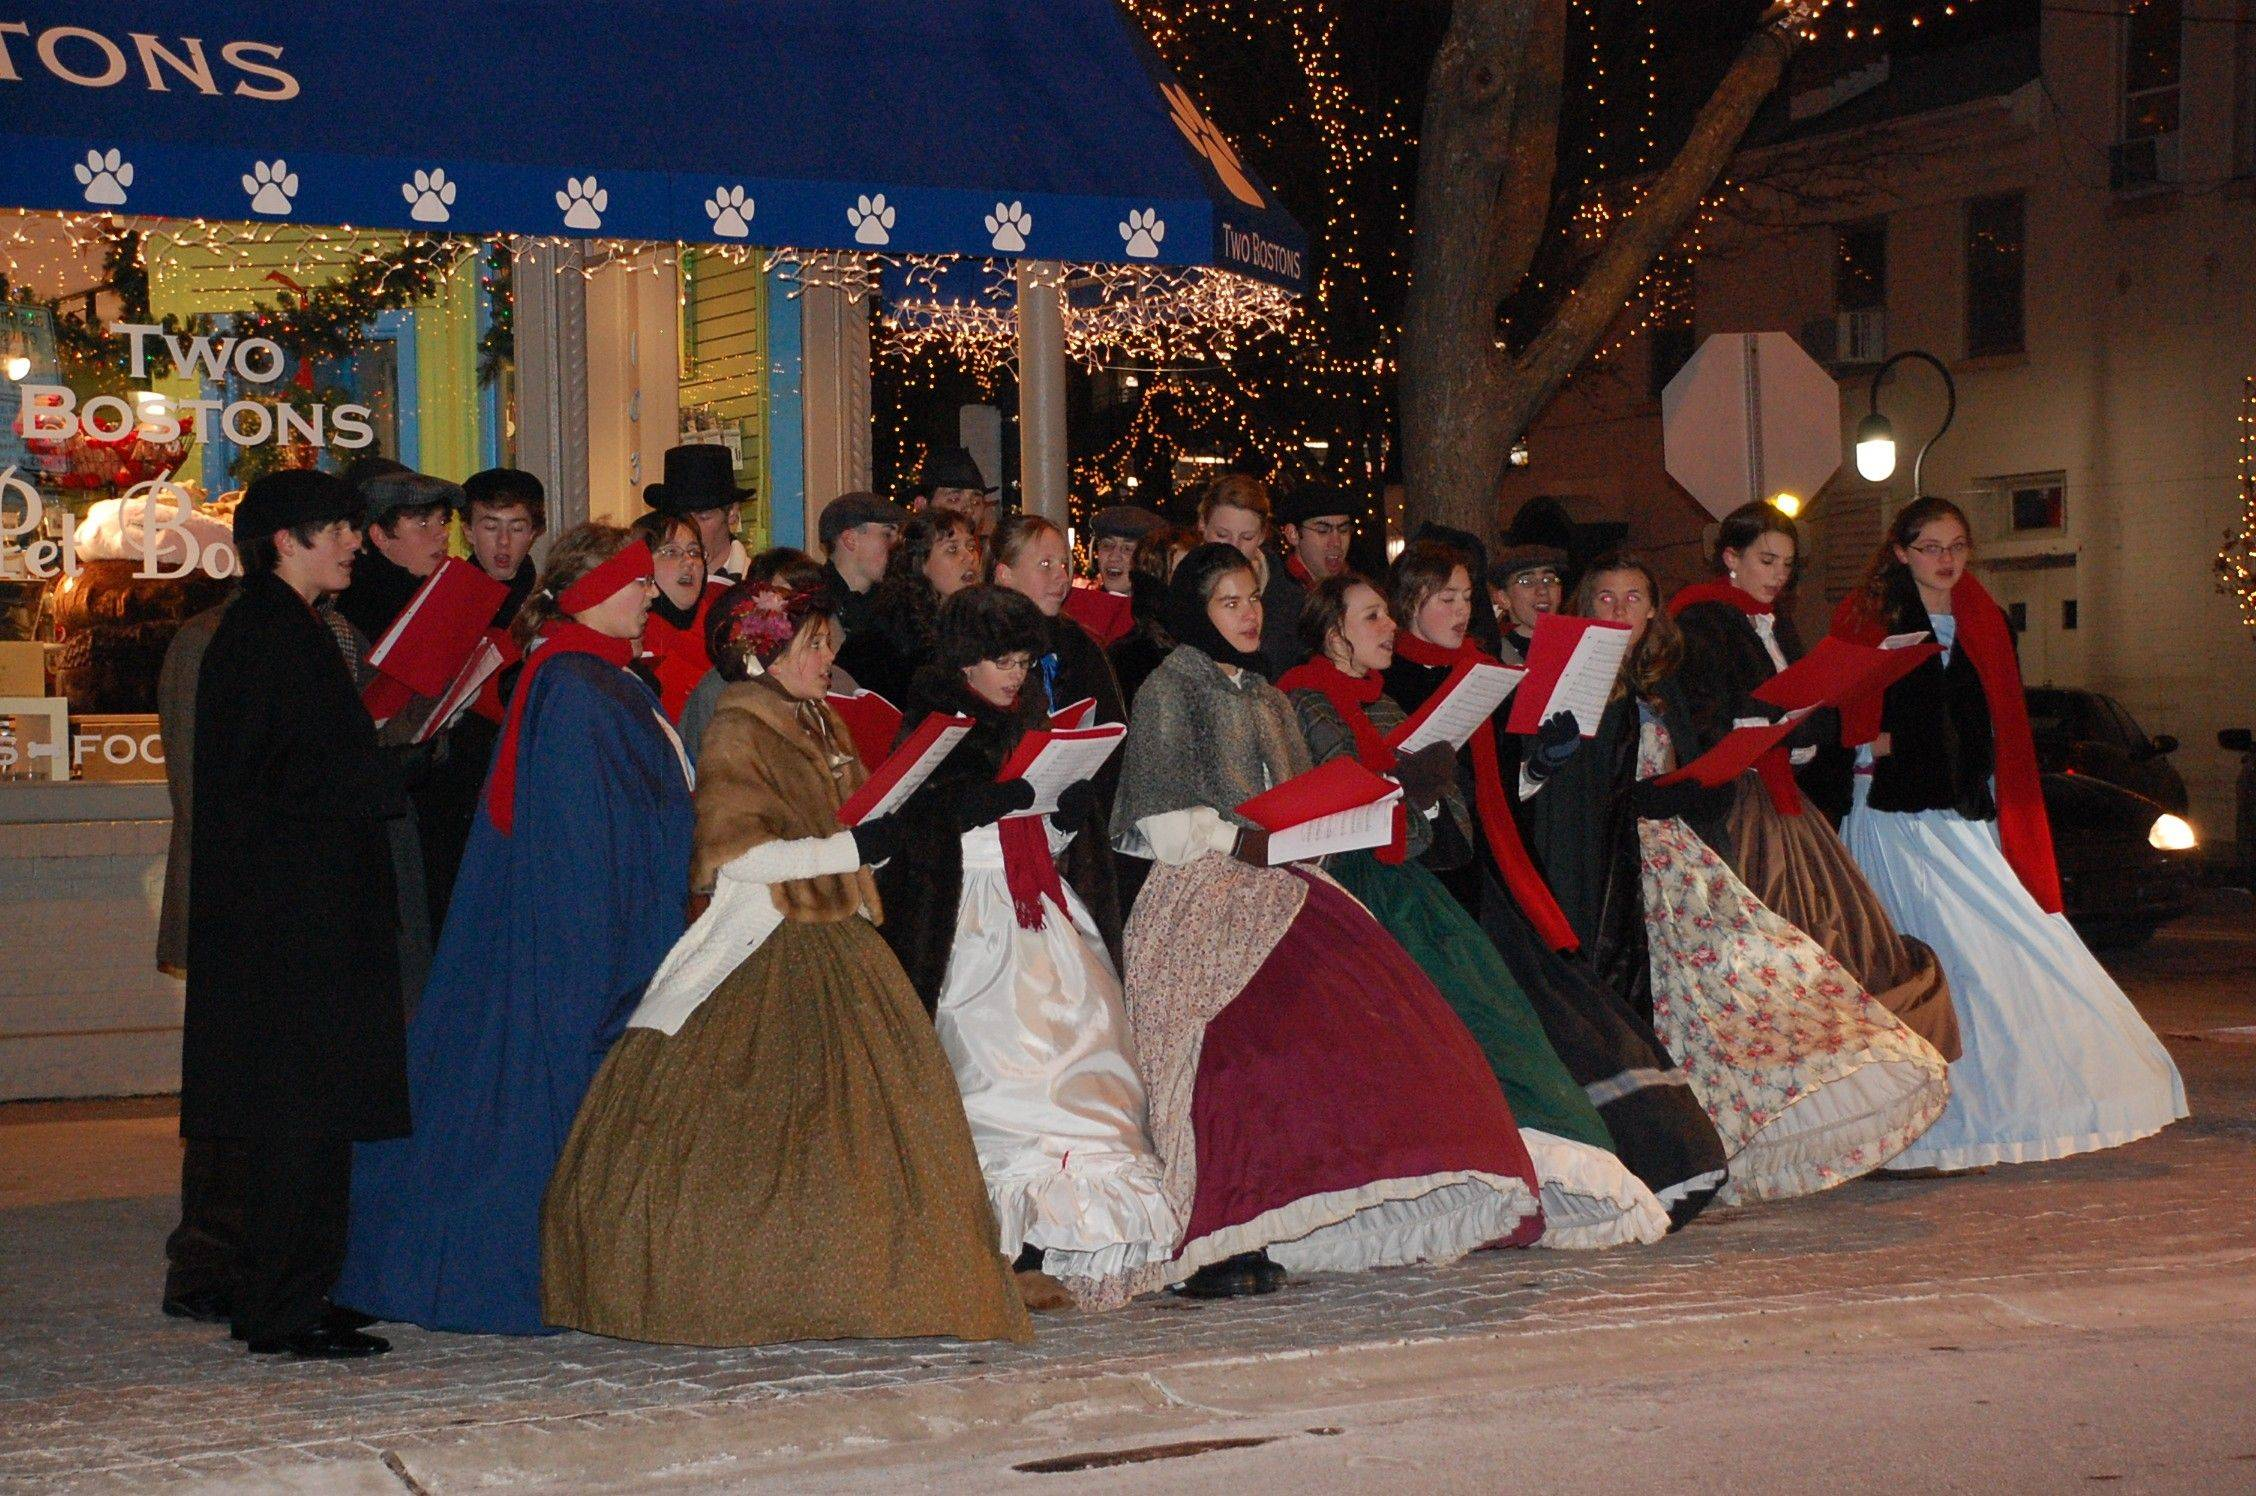 The sounds of carolers in downtown Naperville can help ease some of the last-minute holiday shopping stress.